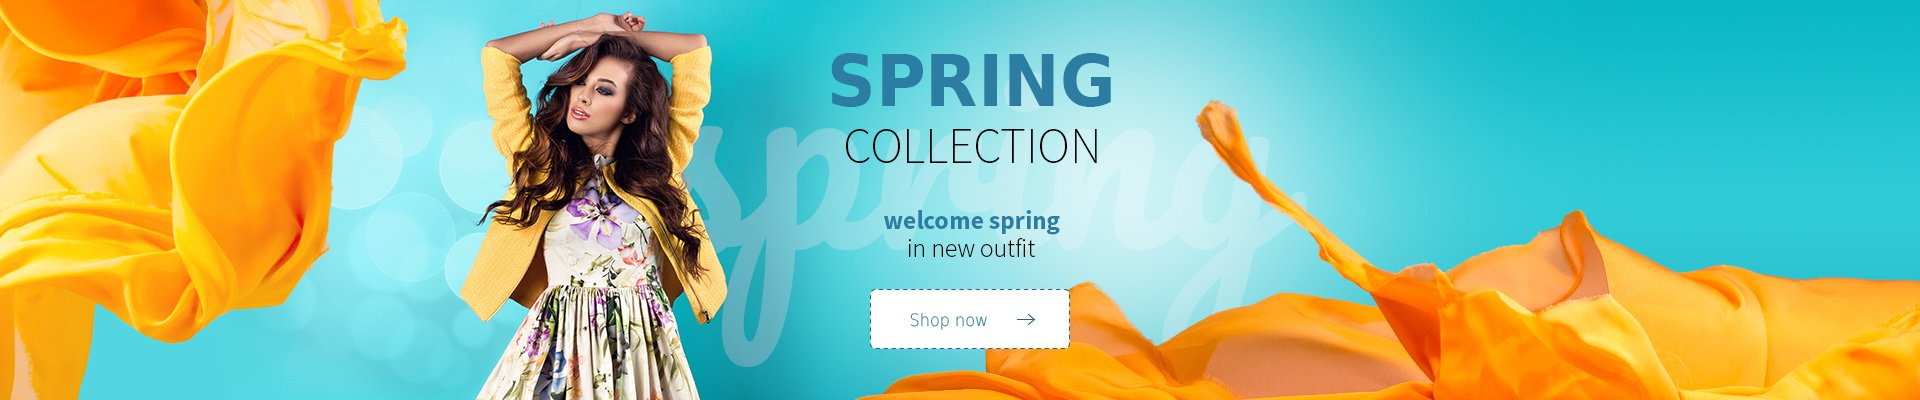 Welcome spring in new outfit